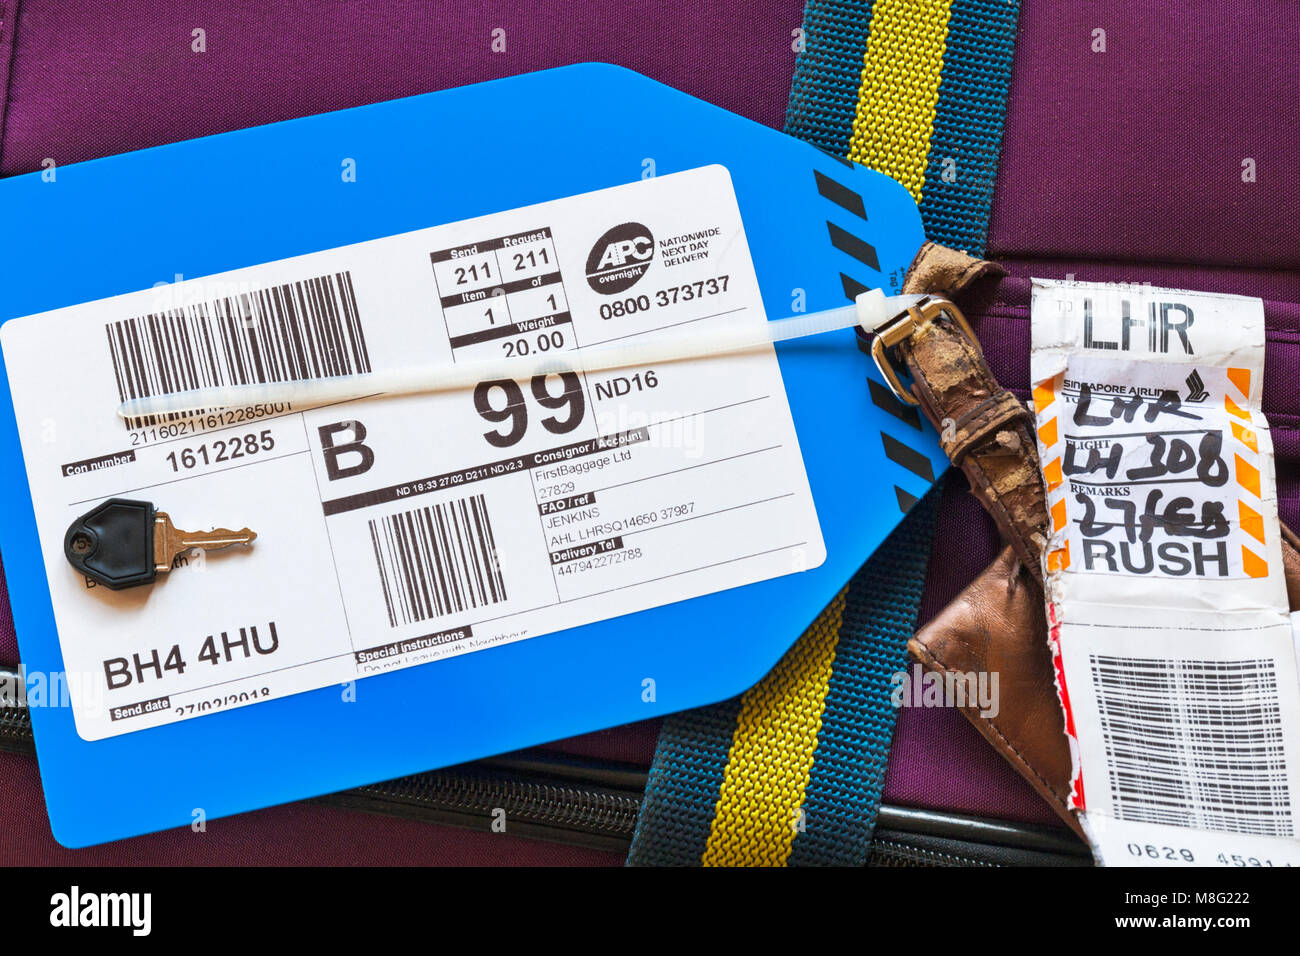 labels on lost suitcase being sent on following flight for home delivery from Singapore to Heathrow via Singapore - Stock Image